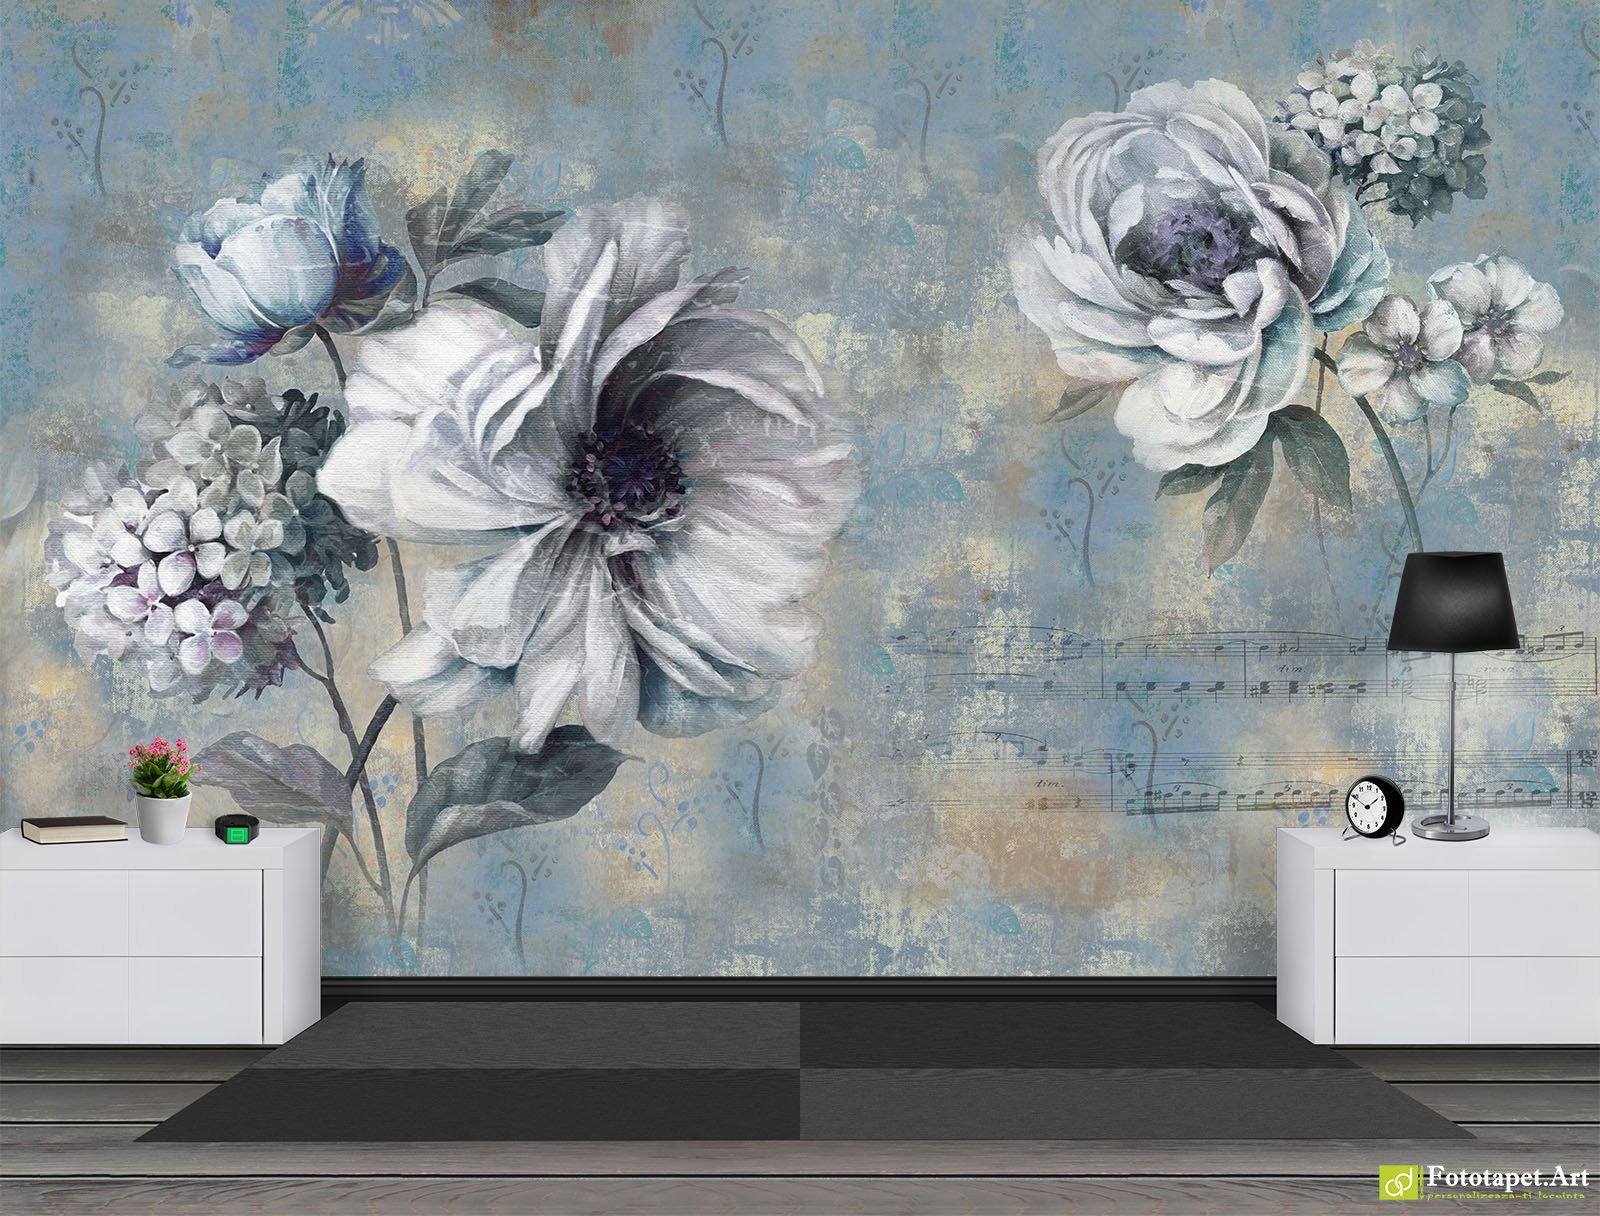 Retro wallpaper vintage wall murals flowers and notes in retro wallpaper vintage wall murals flowers and notes in vintage style fototapett retro wallpaper the best selection of wall murals and photo amipublicfo Gallery